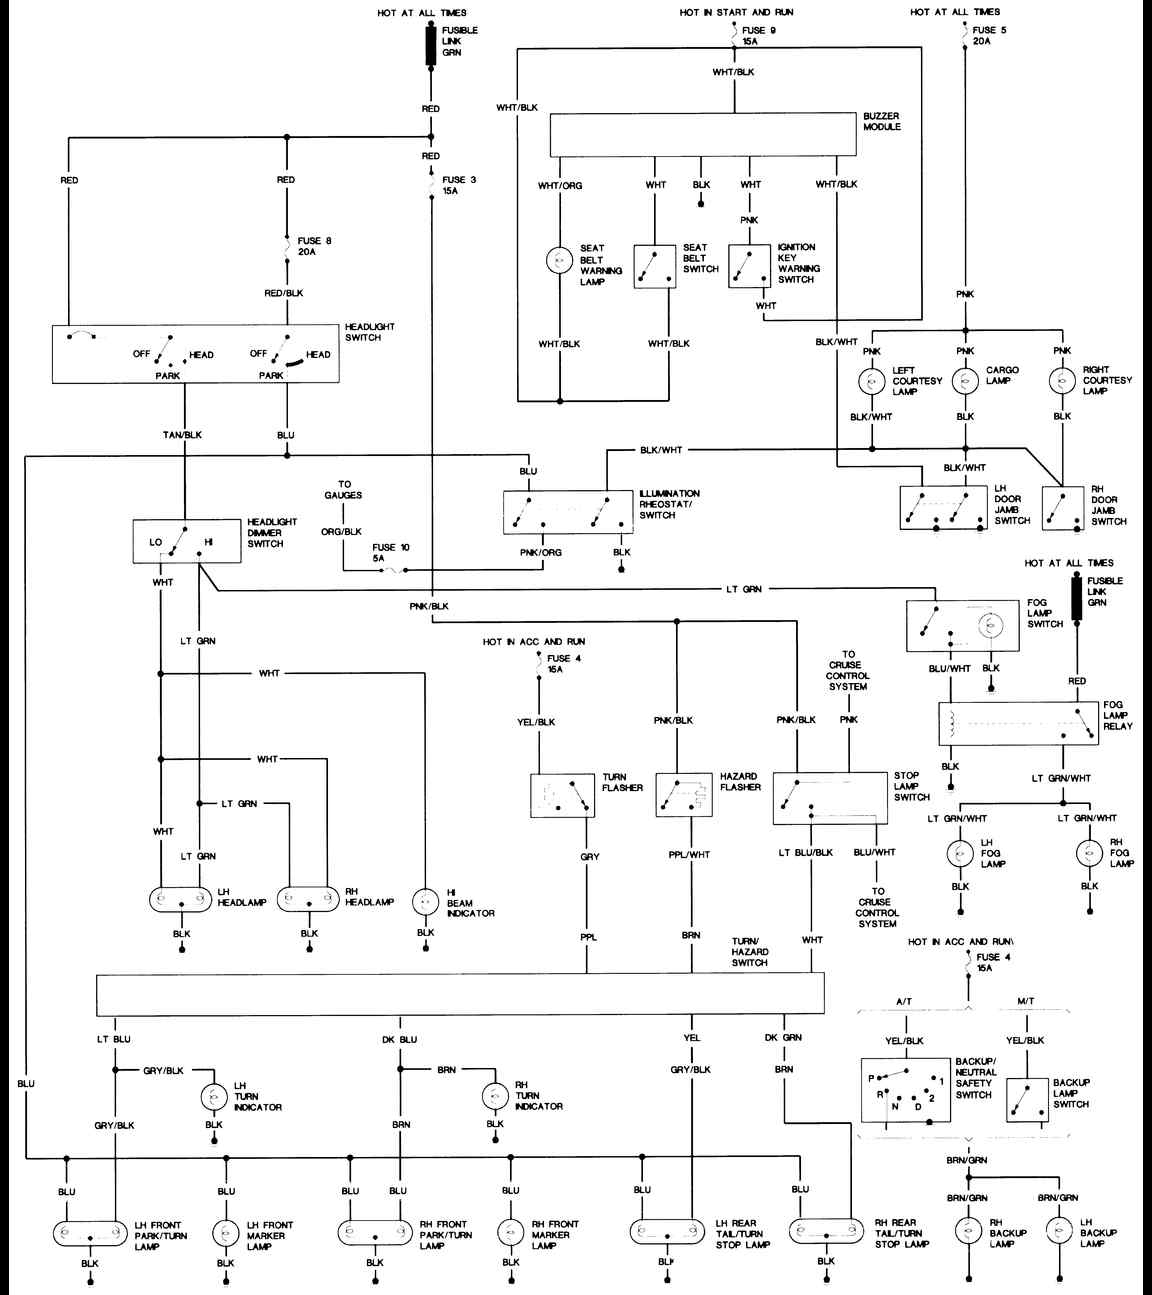 Wiring Diagram For 1988 Jeep Comanche Trusted 88 Cherokee Diagrams Index Freeautomechanic 1998